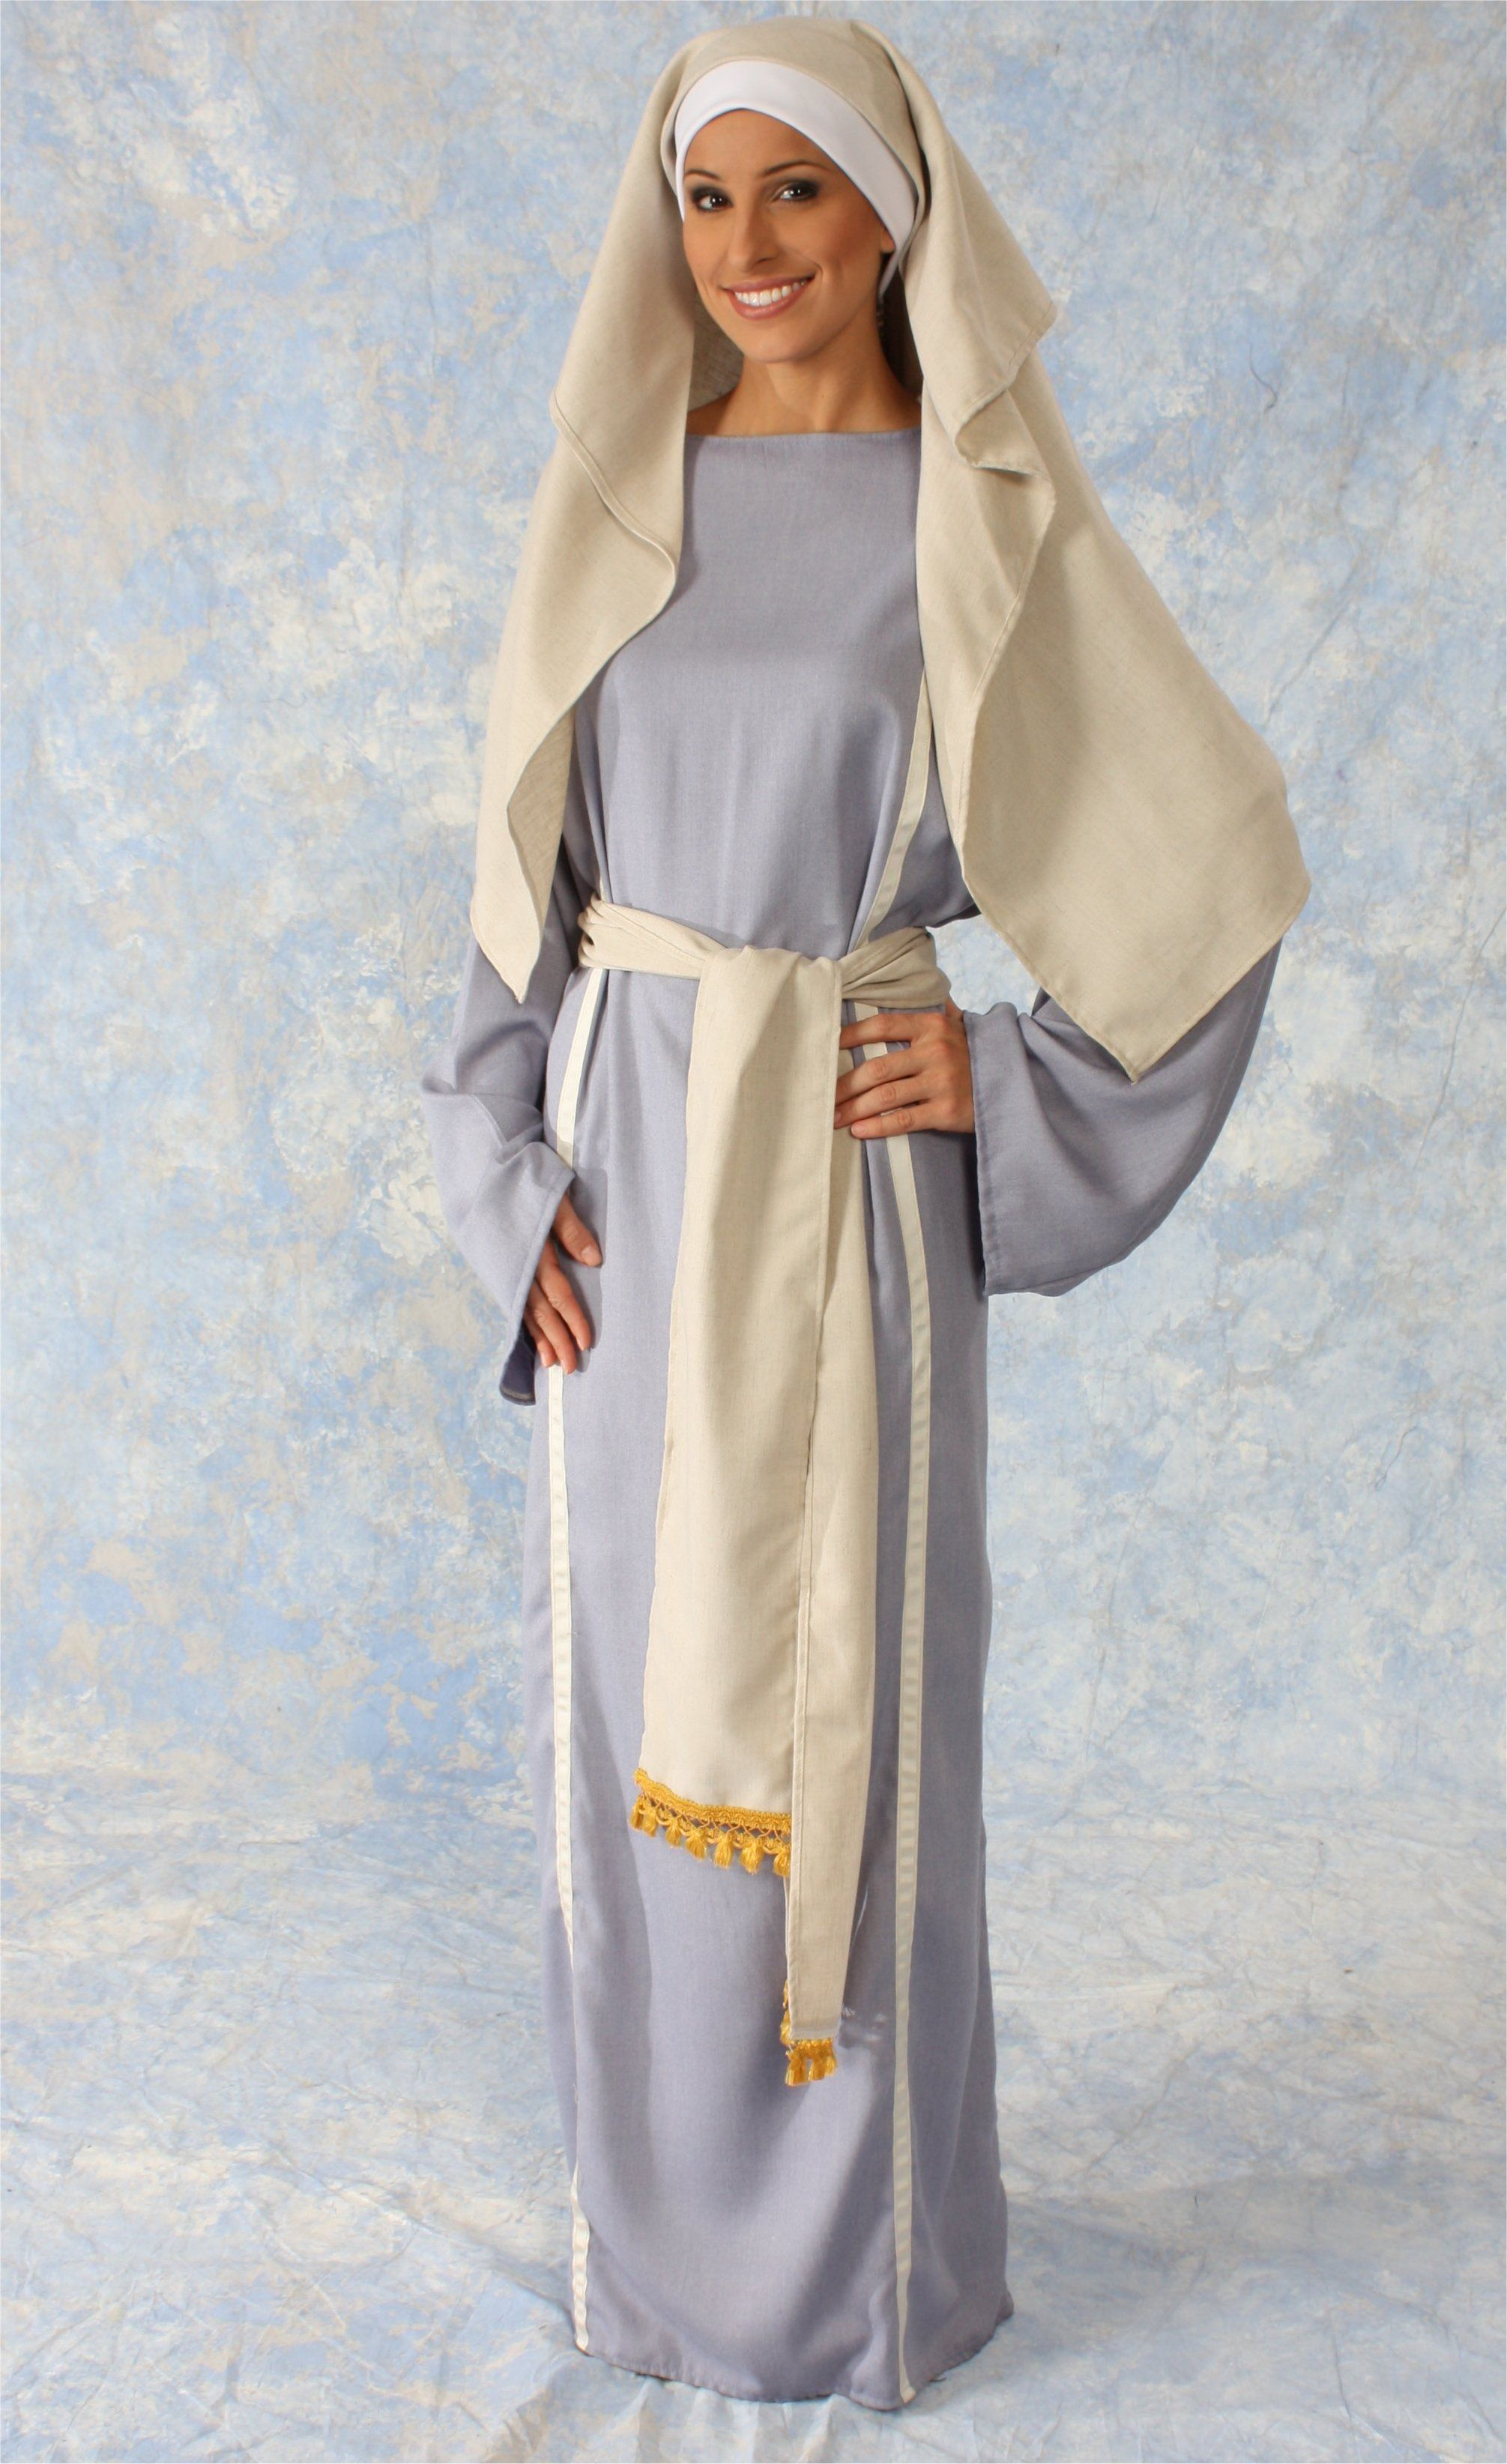 Womens bible costume maybe ahli could do this to be dorcas womens bible costume maybe ahli could do this to be dorcas hmm solutioingenieria Gallery